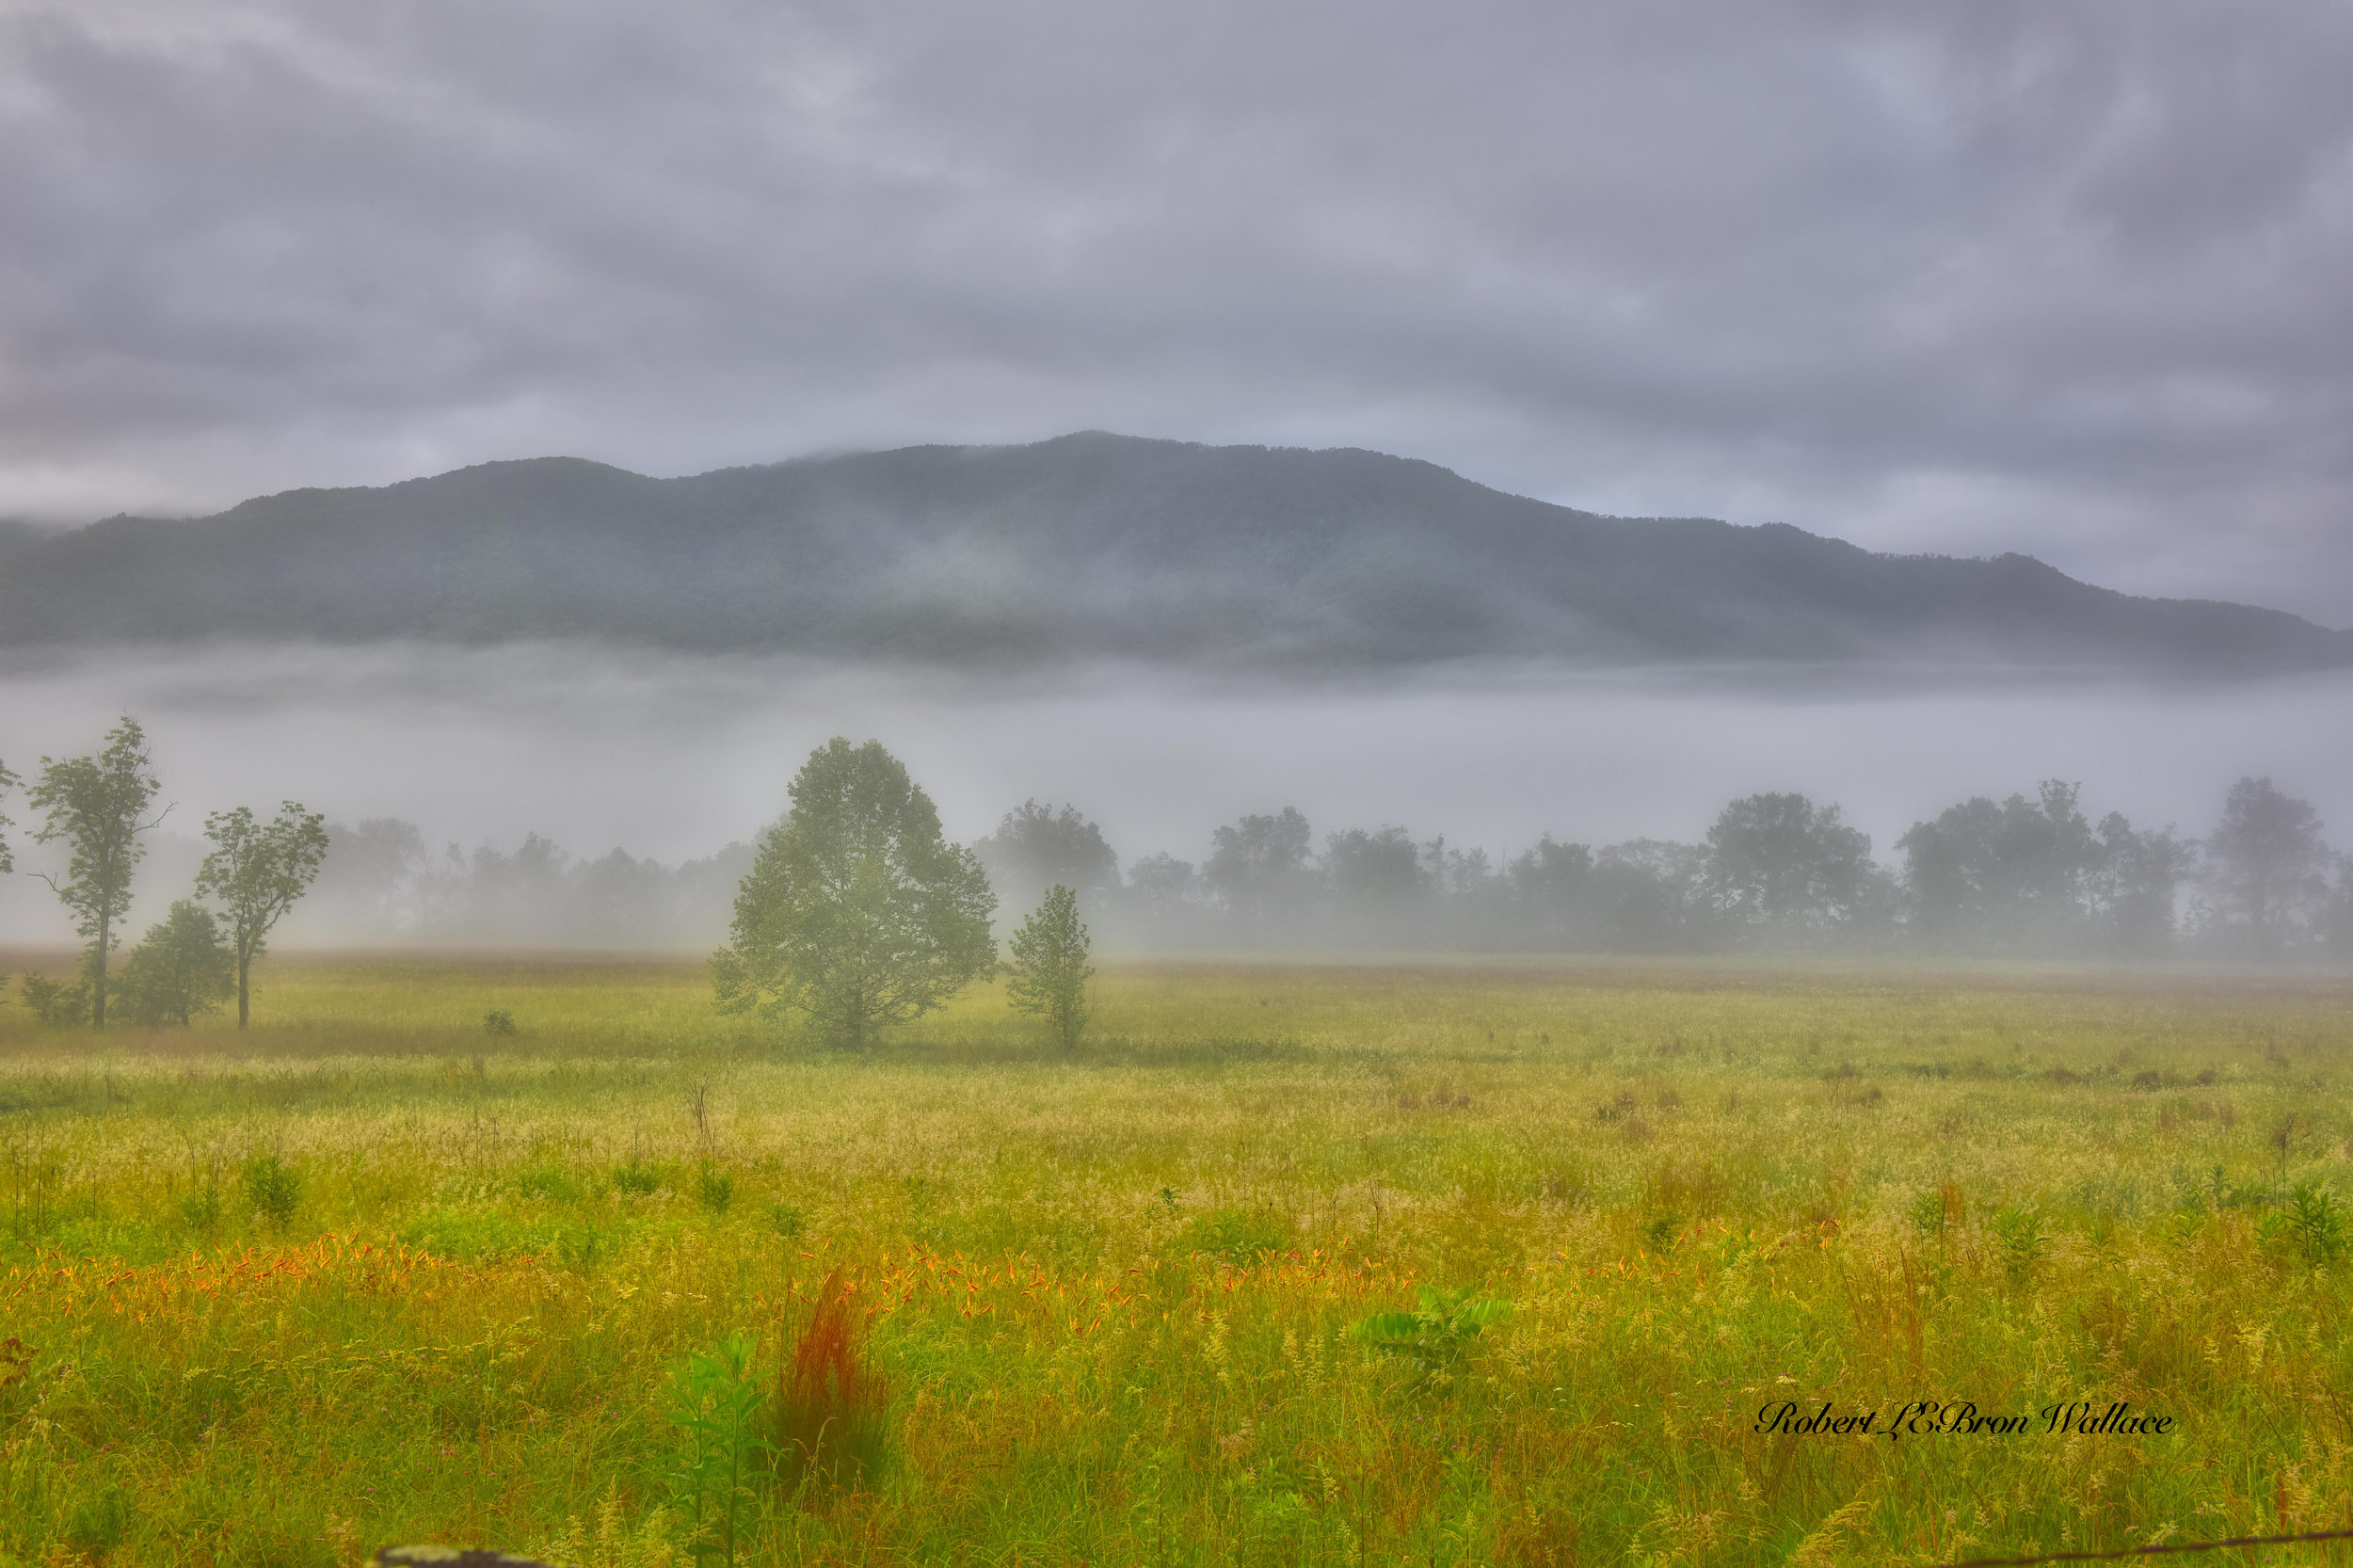 THE BLUE MIST FOREVER HOVERING OVER ITS PEAKS AND WILD FLOWER FILLED VALLEYS GIVES THE BLUE RIDGE MOUNTAINS A MYSTERIOUS OTHER-WORLDLY FEEL. IMAGE ROBERT LEBRON WALLACE.